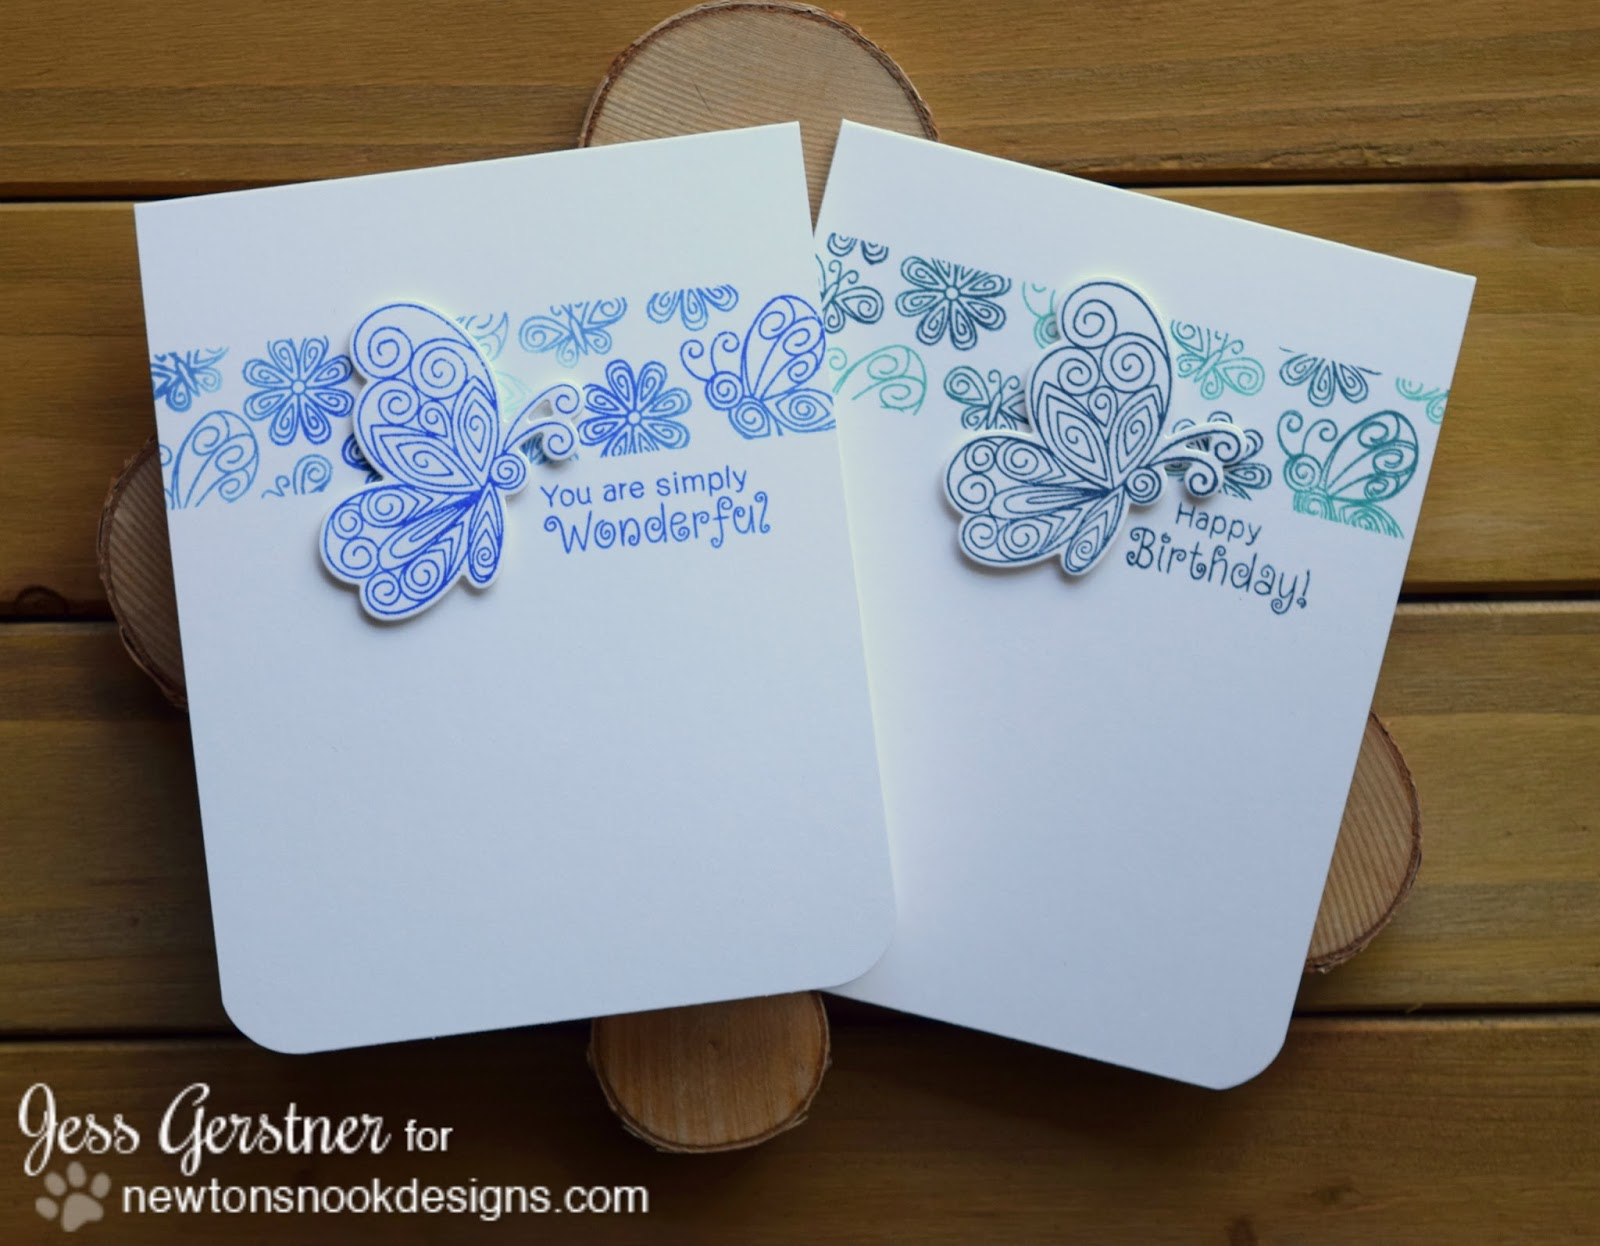 Jess crafts comparing hero arts and michaels recollection ombre butterfly ombre card by jess gerstner for newtons nook designs m4hsunfo